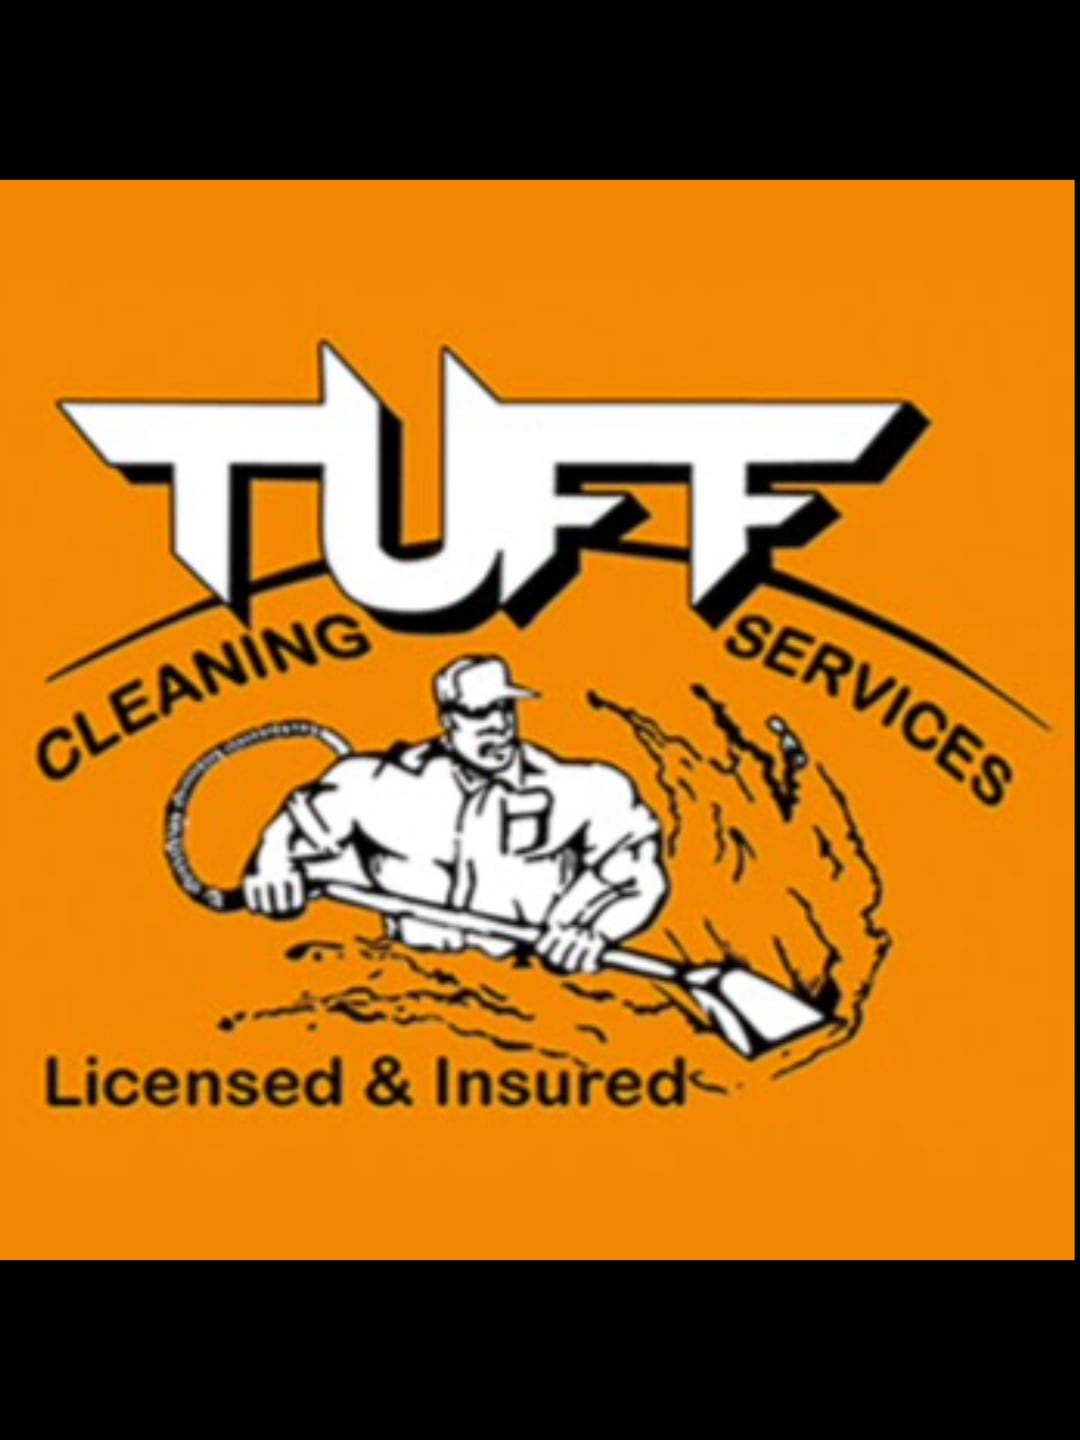 Tuff Carpet Cleaning